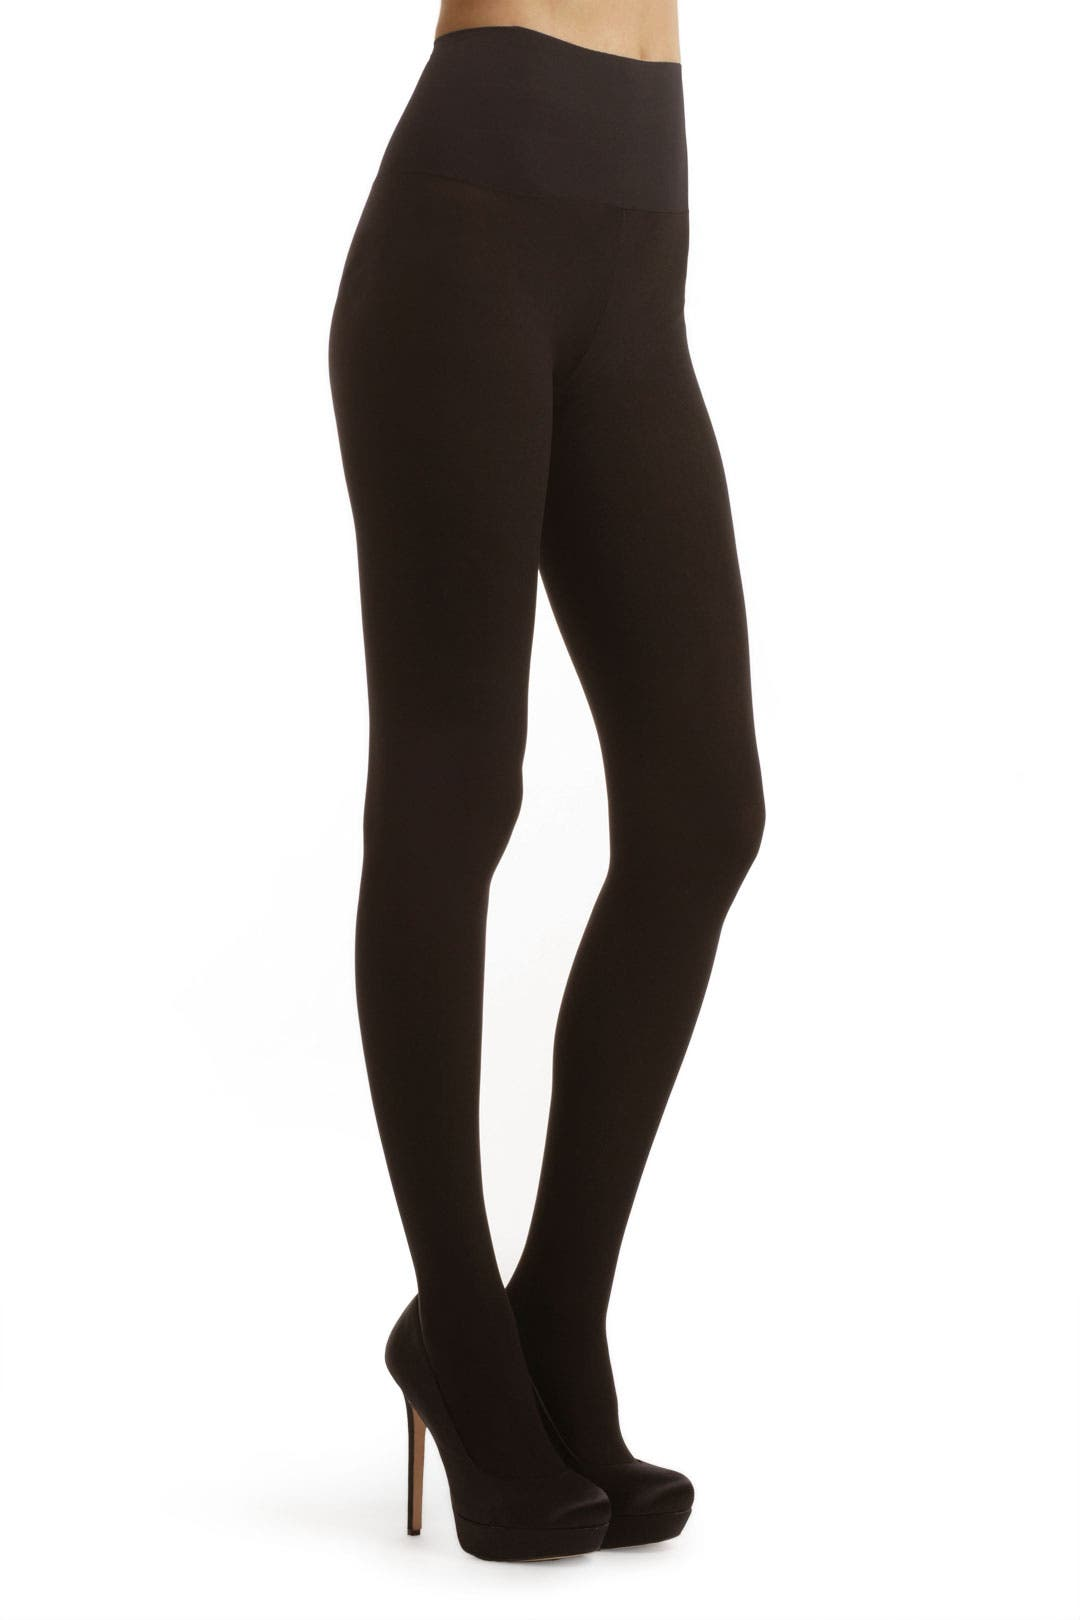 Black Opaque Matte Tights by Commando